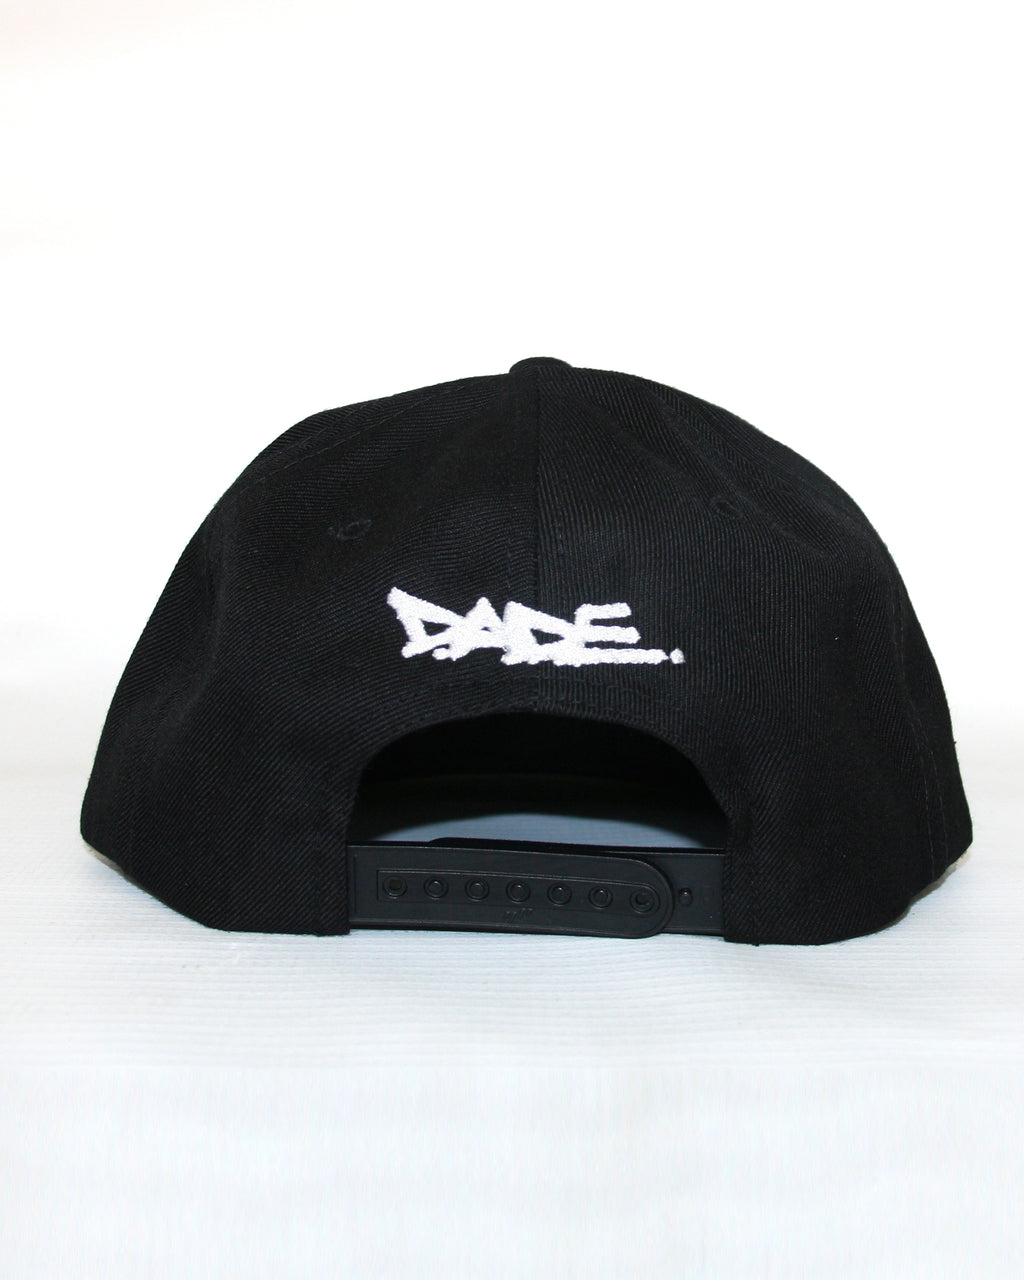 Vandal Snap Back